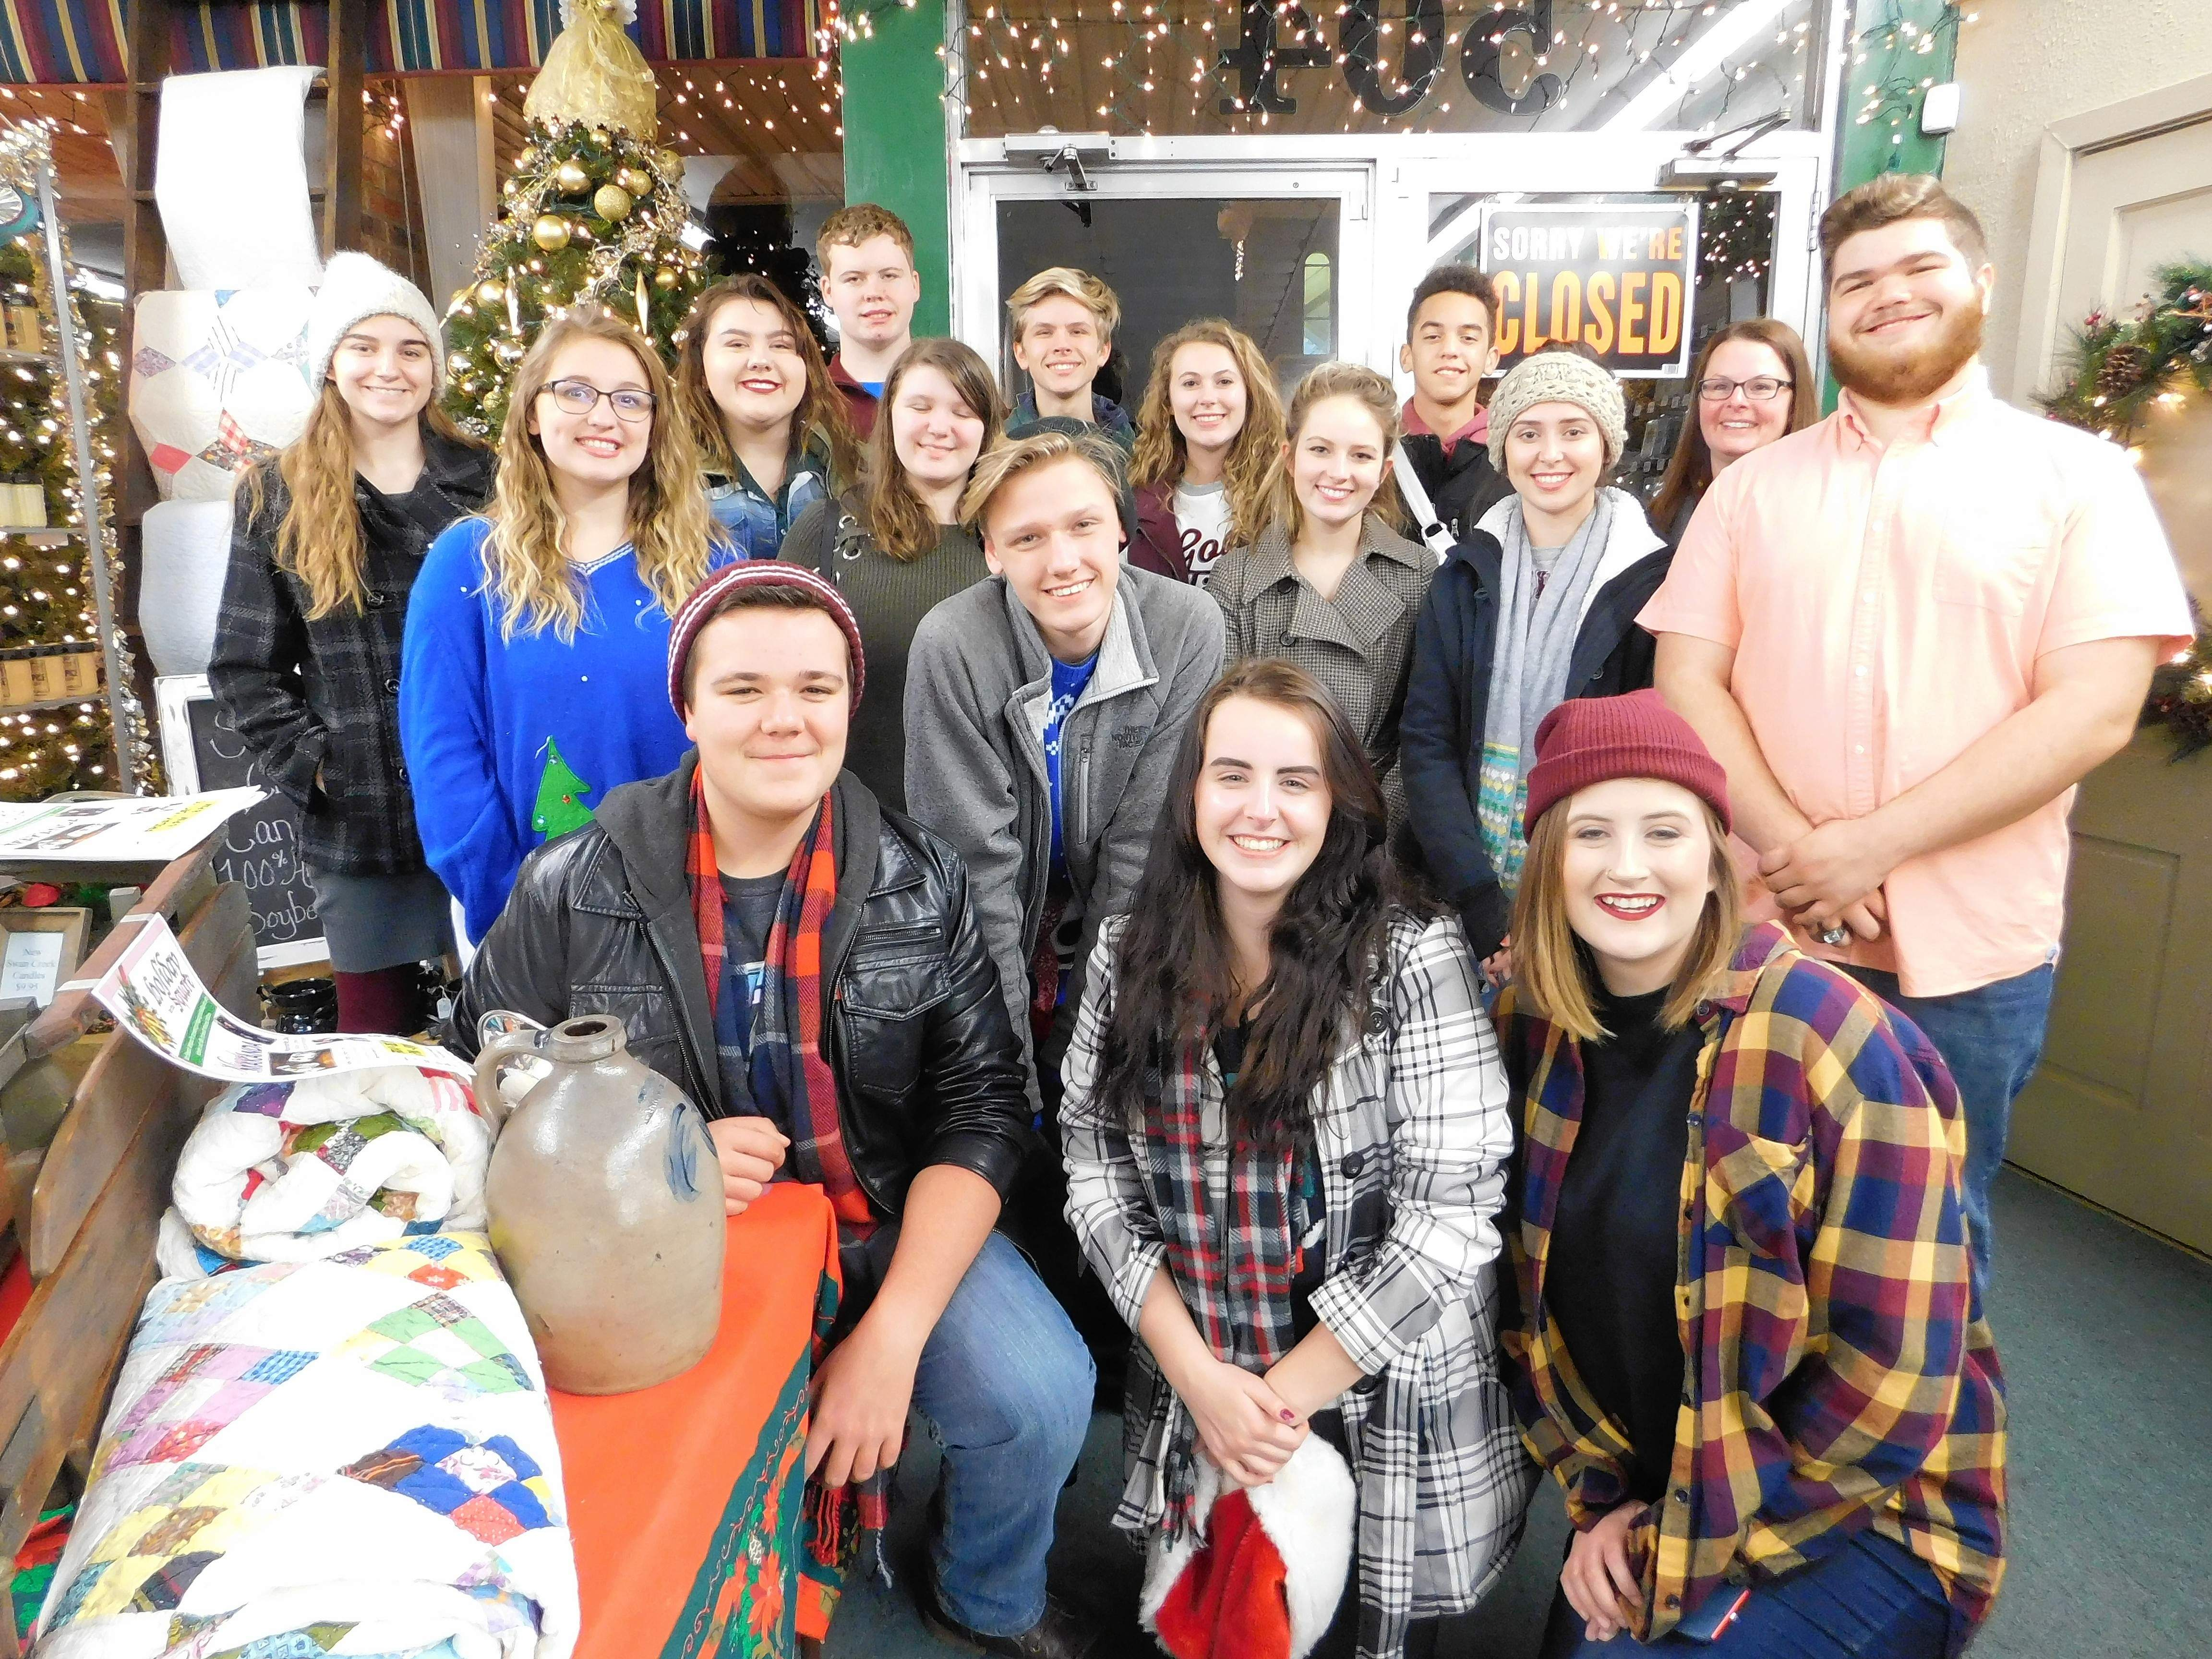 Members of the Benton High School Madrigals spent their Friday evening volunteering to provide entertainment for the Miracle for Makanda fundraiser. The group spent two hours caroling around the Square and at locals businesses that remained open to join the event. After performing the annual madrigal feast, the group has put in appearances at several local nursing homes, the retired teachers' luncheon, and will appear on WSIL's 'Sounds of the Season' Dec. 21.